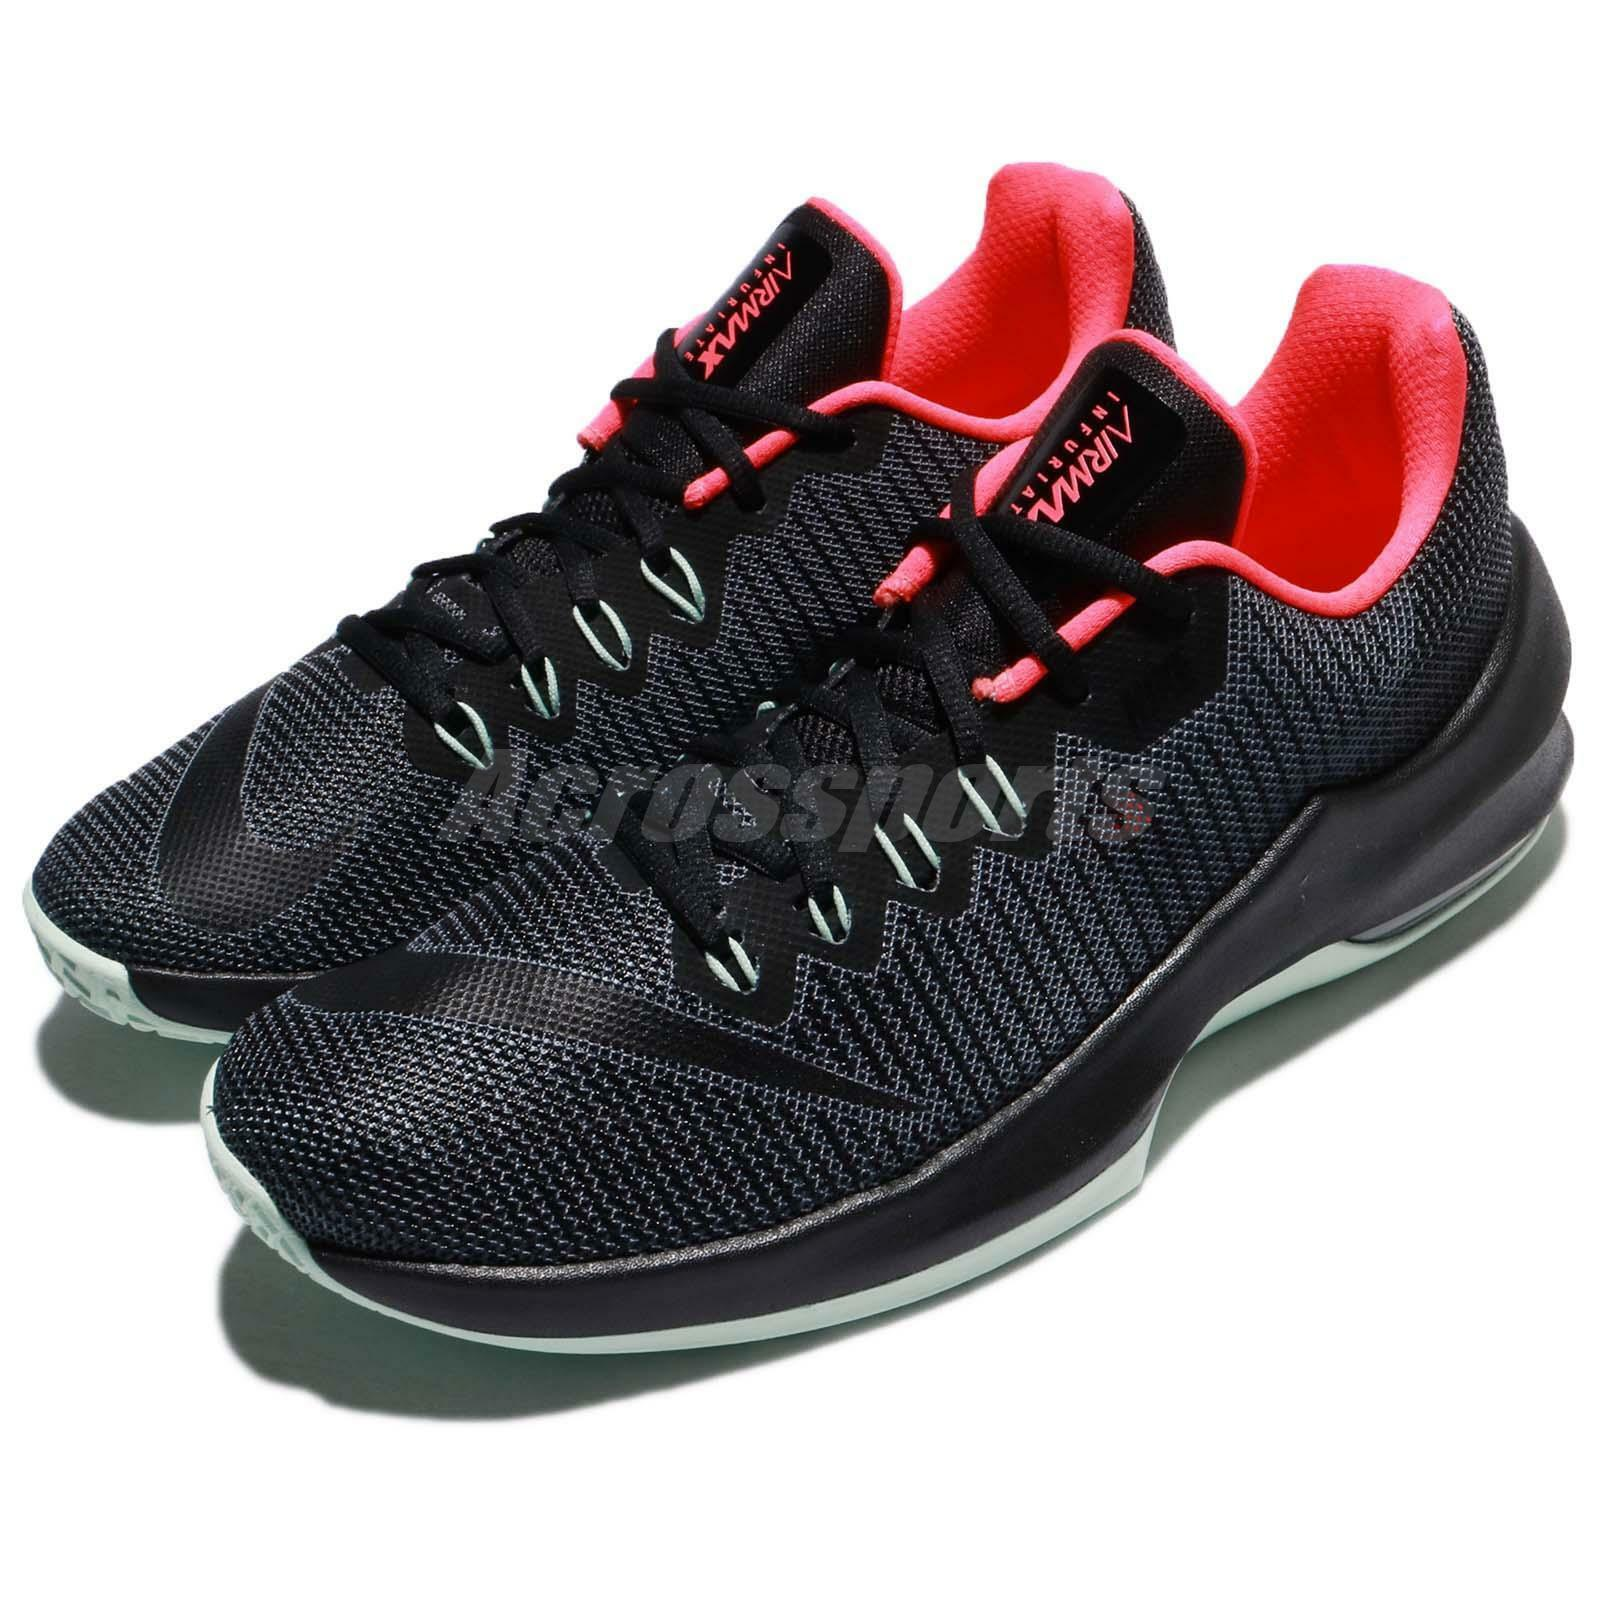 Nike Air Max Infuriate 2 Mid faible PRM EP EP EP II homme Basketball chaussures Baskets Pick 1 e28c74